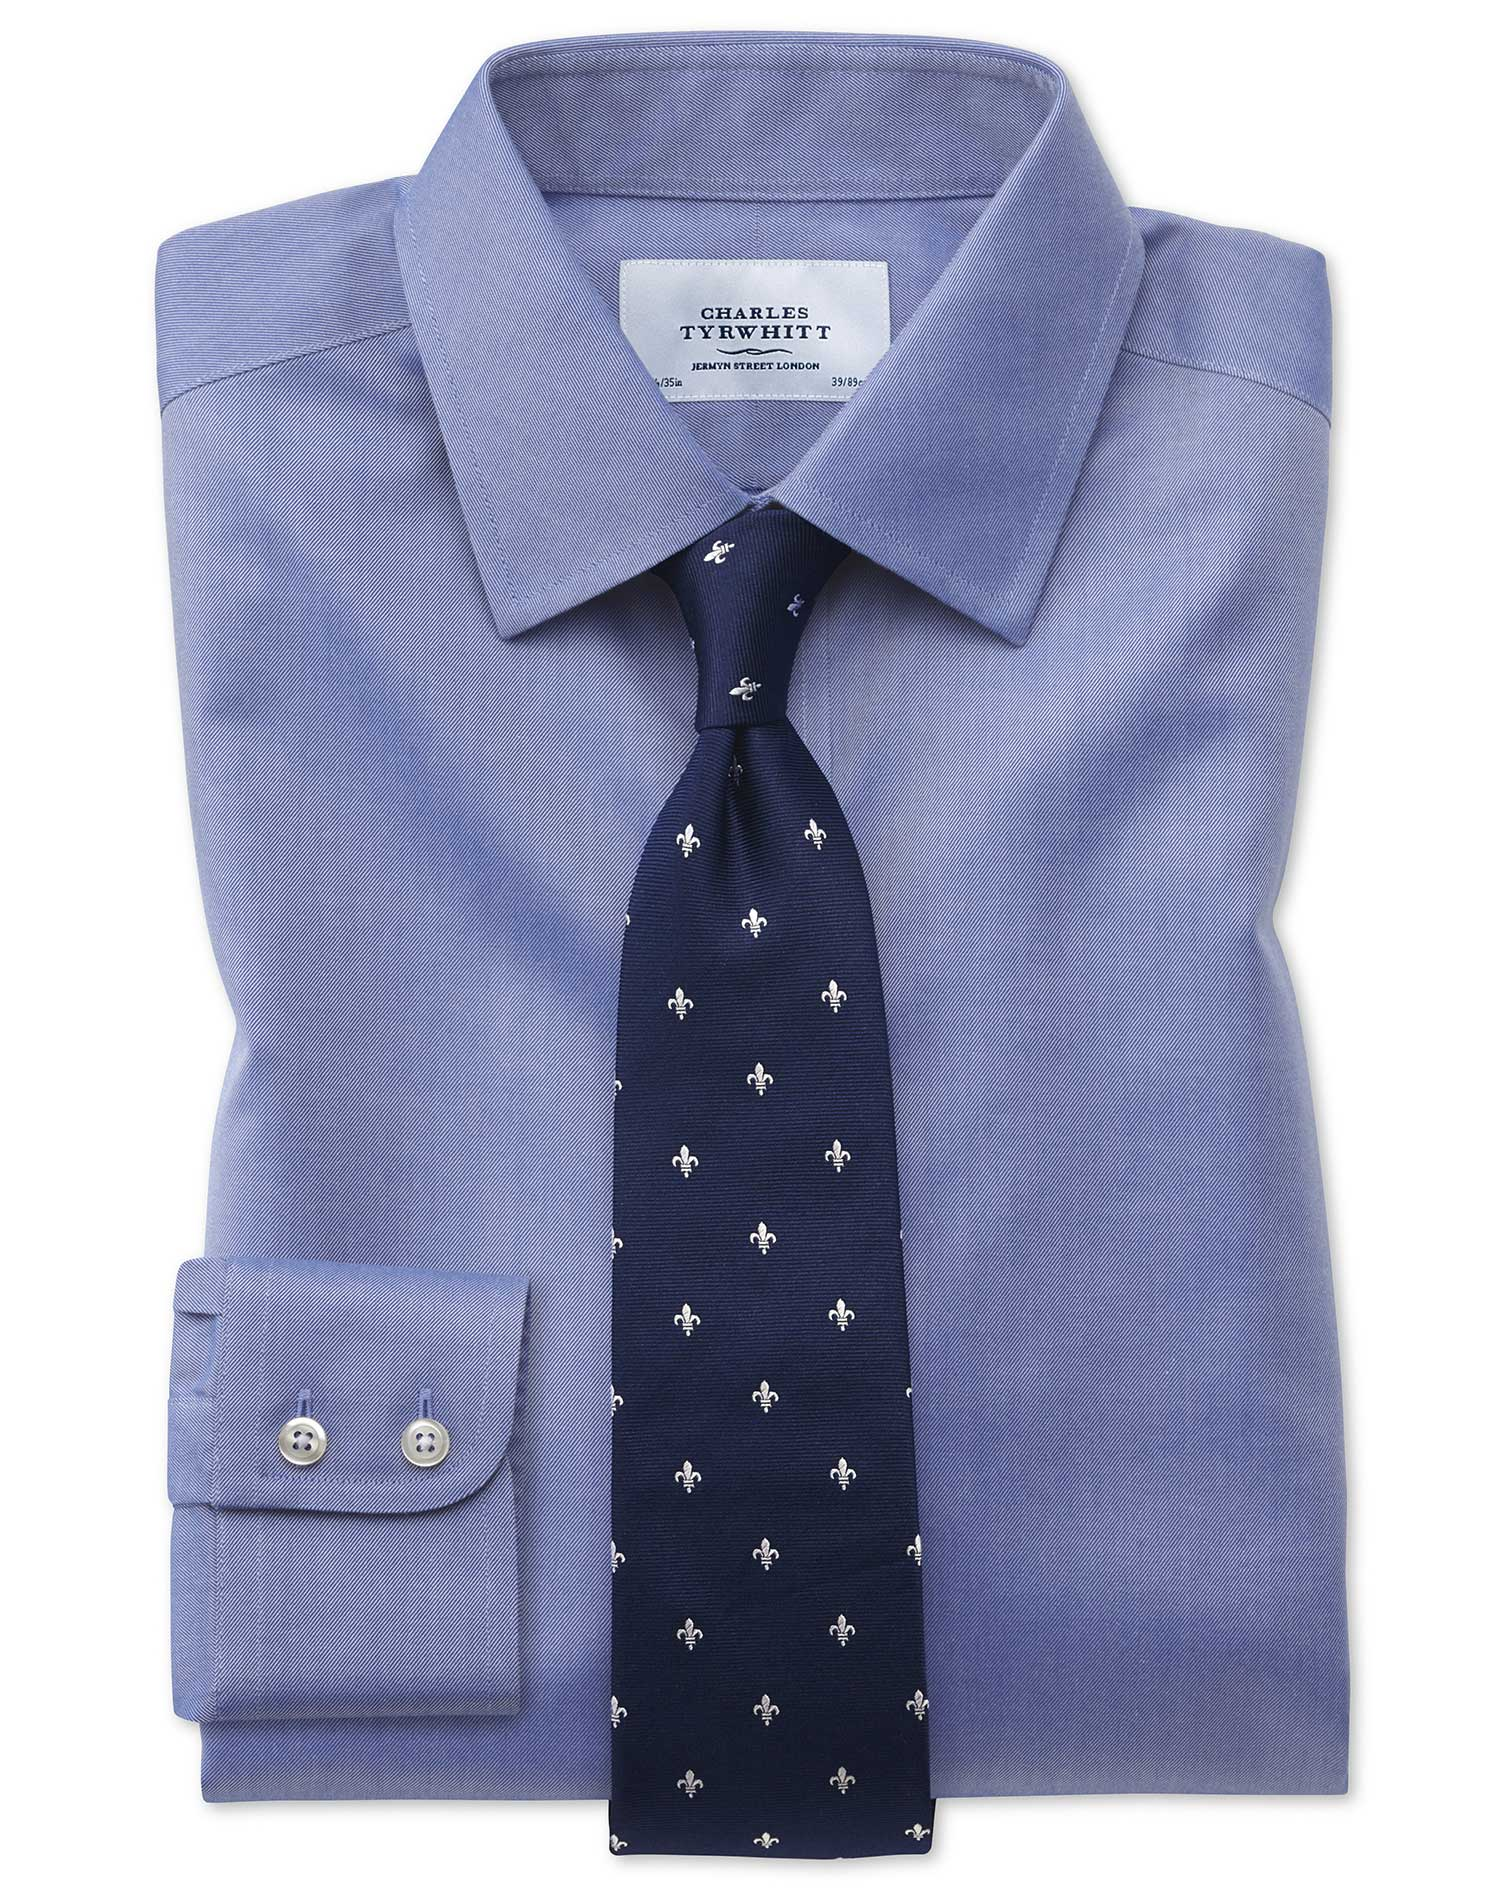 Extra Slim Fit Non Iron Twill Mid Blue Shirt Charles